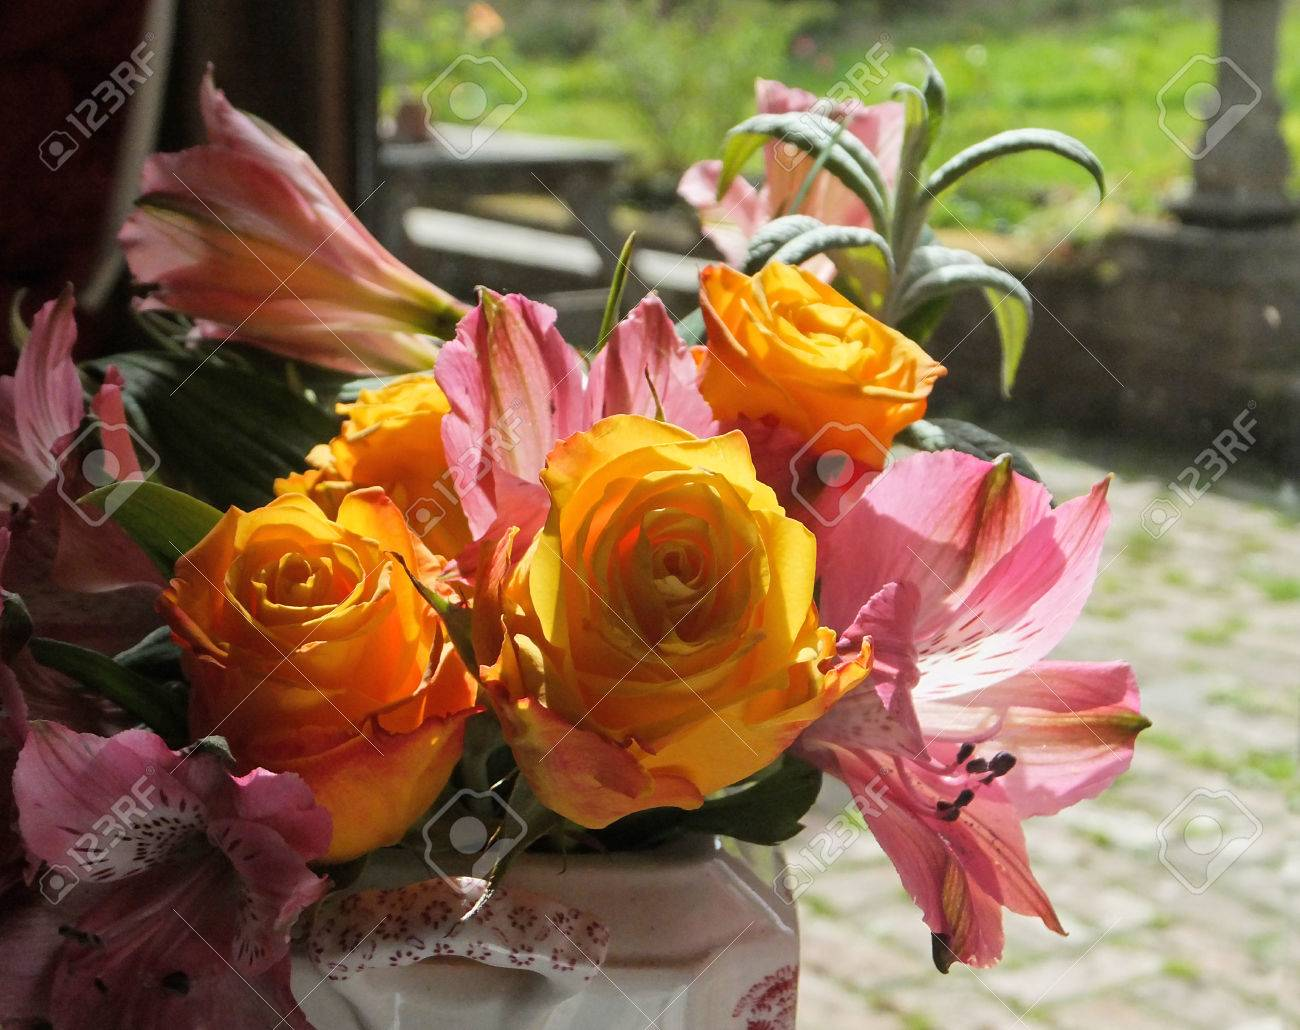 Yellow roses and pink lilies flower arrangement stock photo picture stock photo yellow roses and pink lilies flower arrangement mightylinksfo